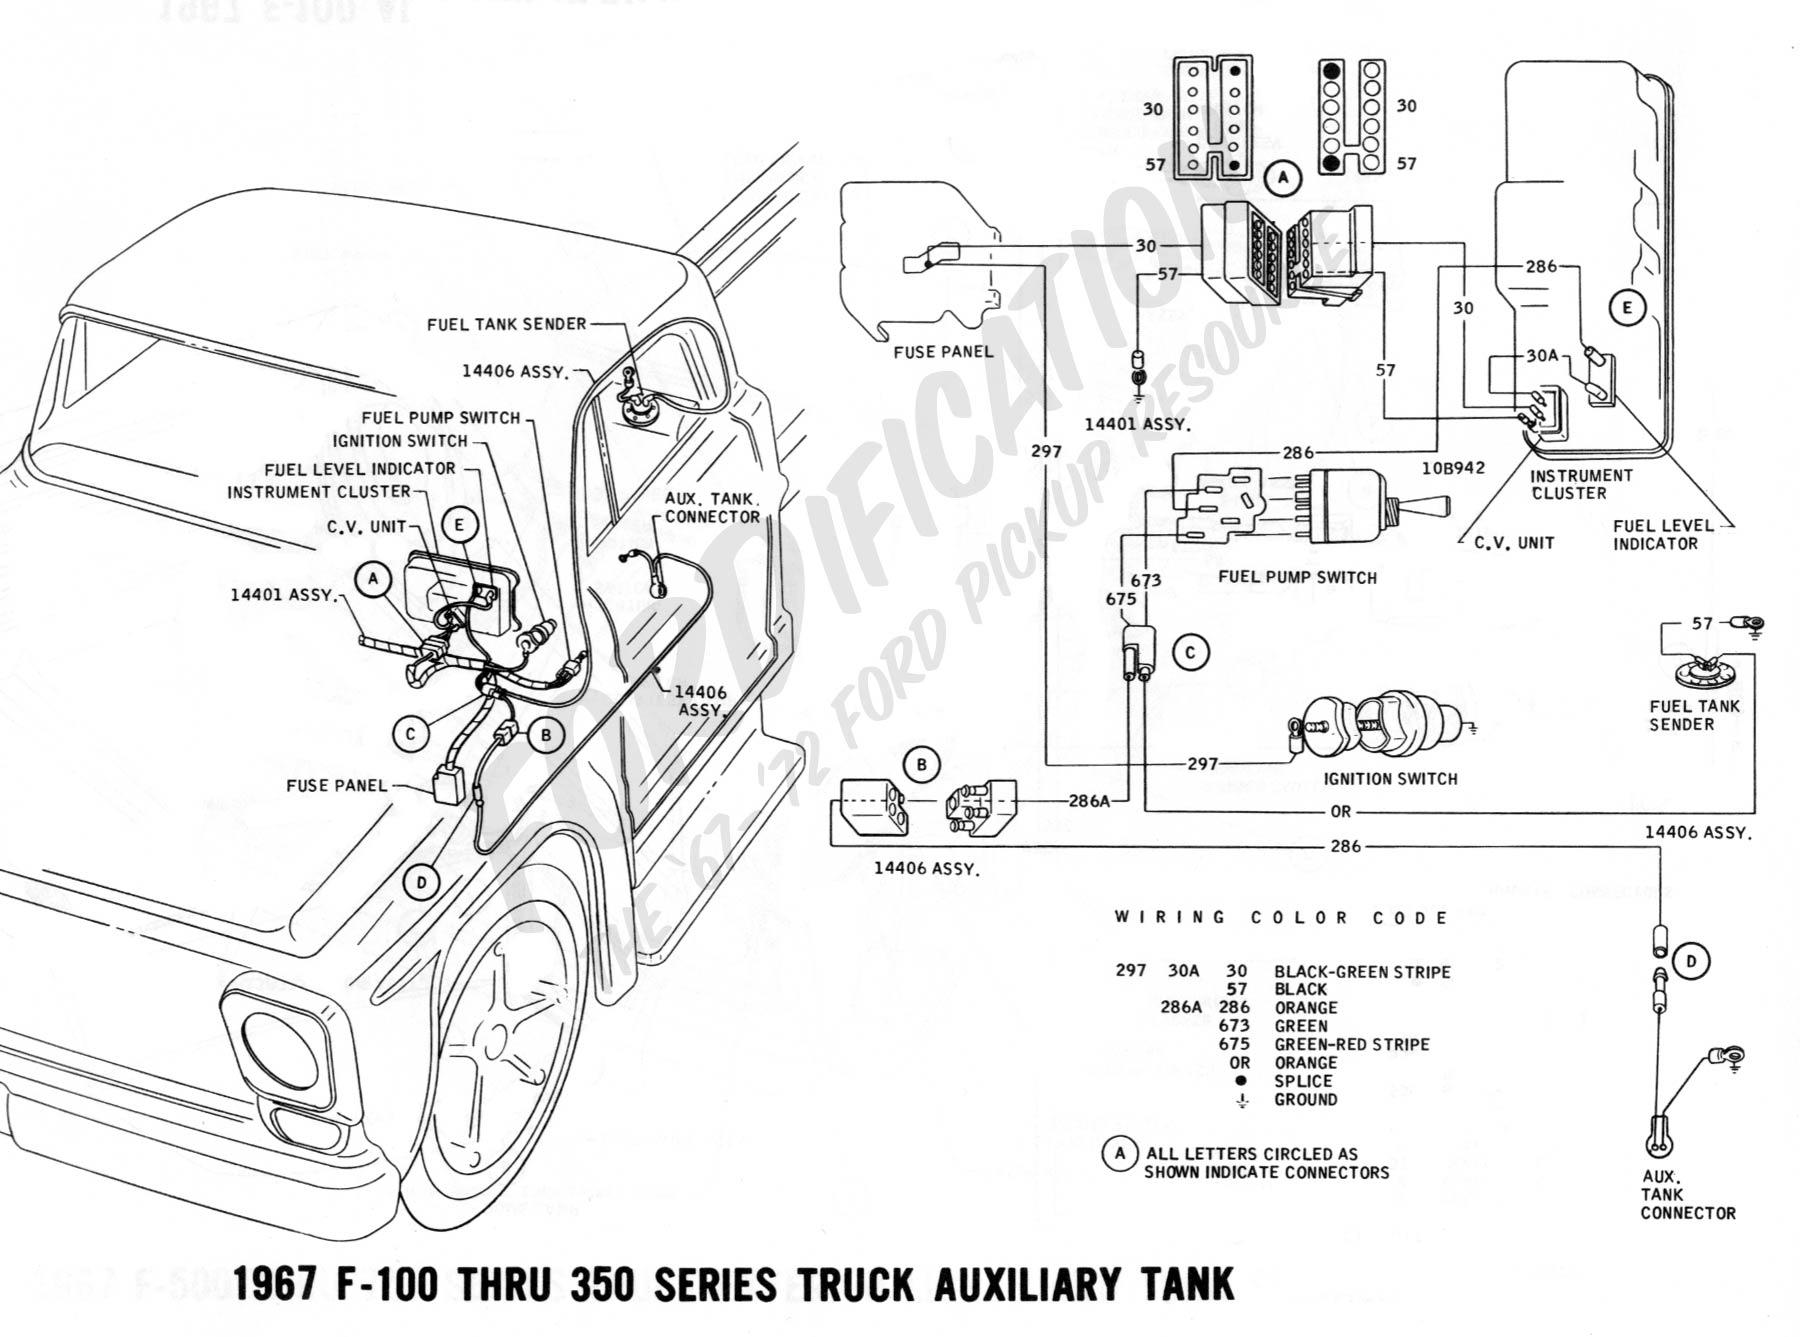 wiring 1967auxtank ford truck technical drawings and schematics section h wiring dual fuel wiring diagram at readyjetset.co